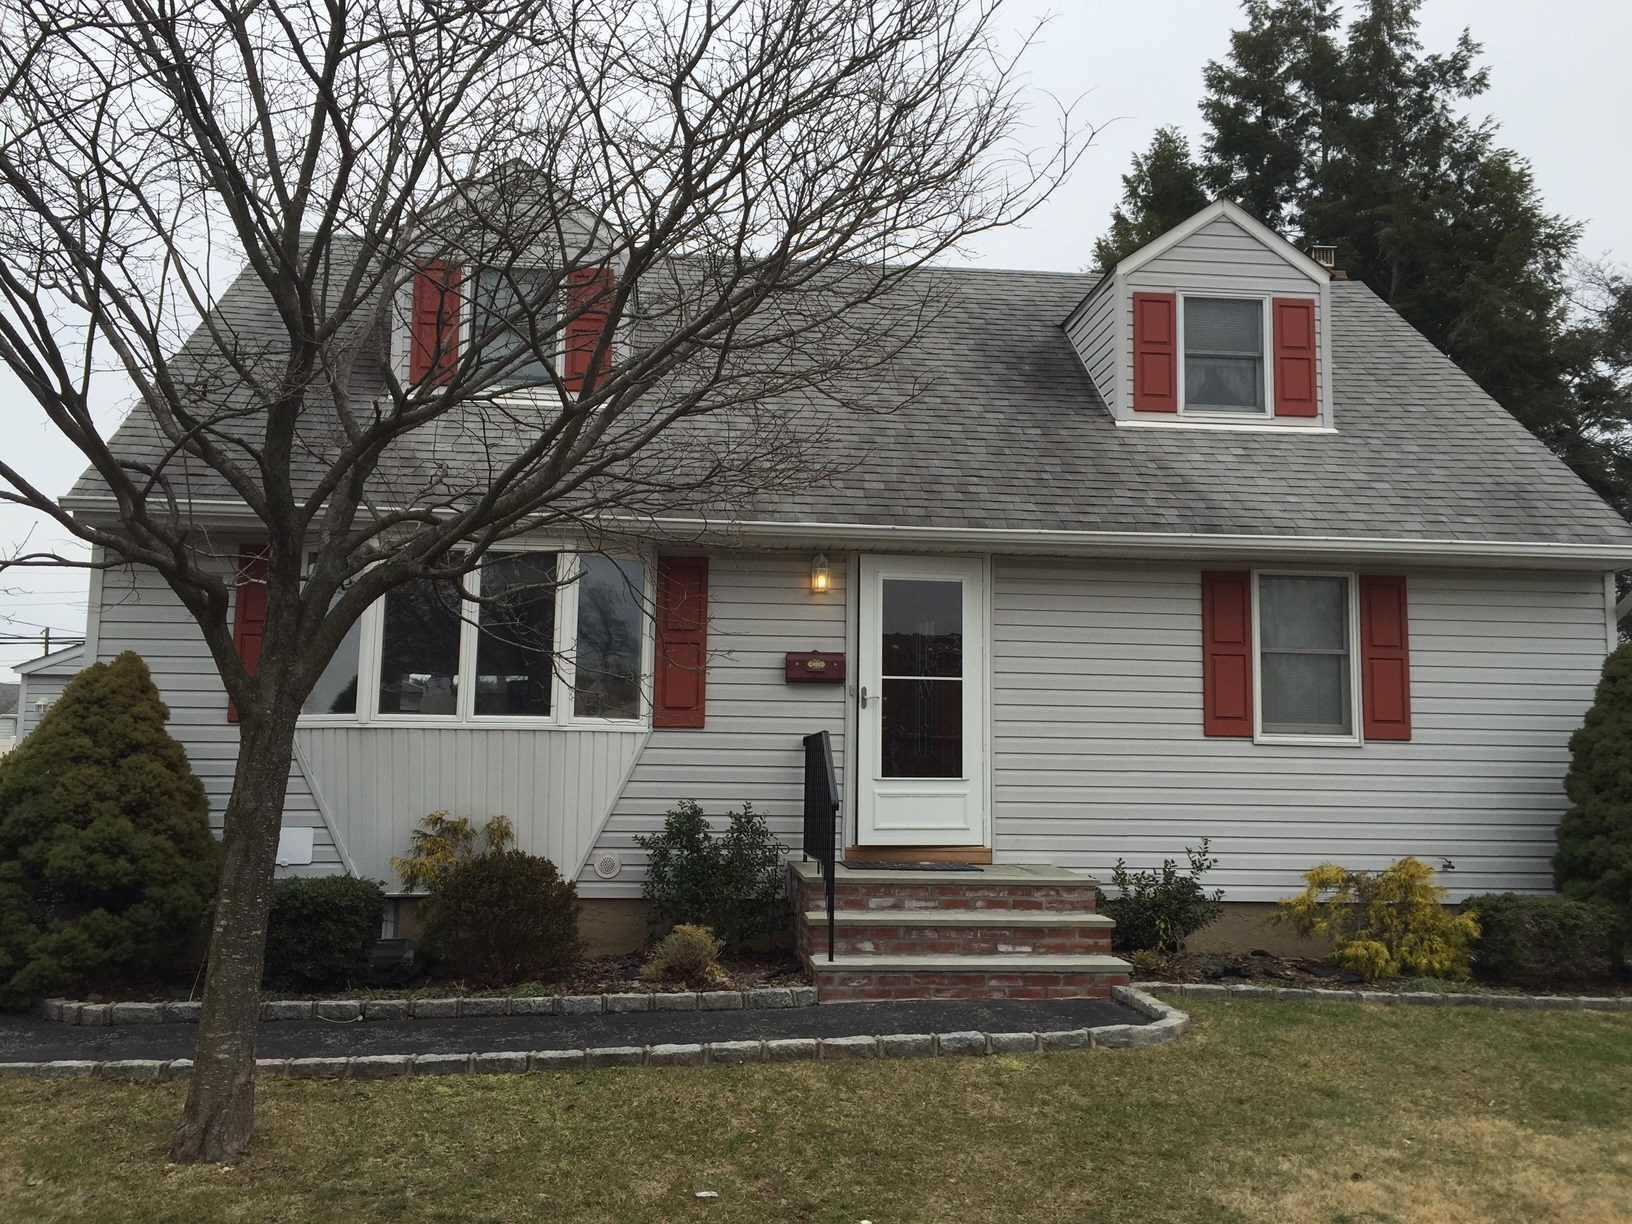 4 Bedrooms House For Rent In Hicksville 4 Bhk Single Family Home In Hicksville Ny 779820